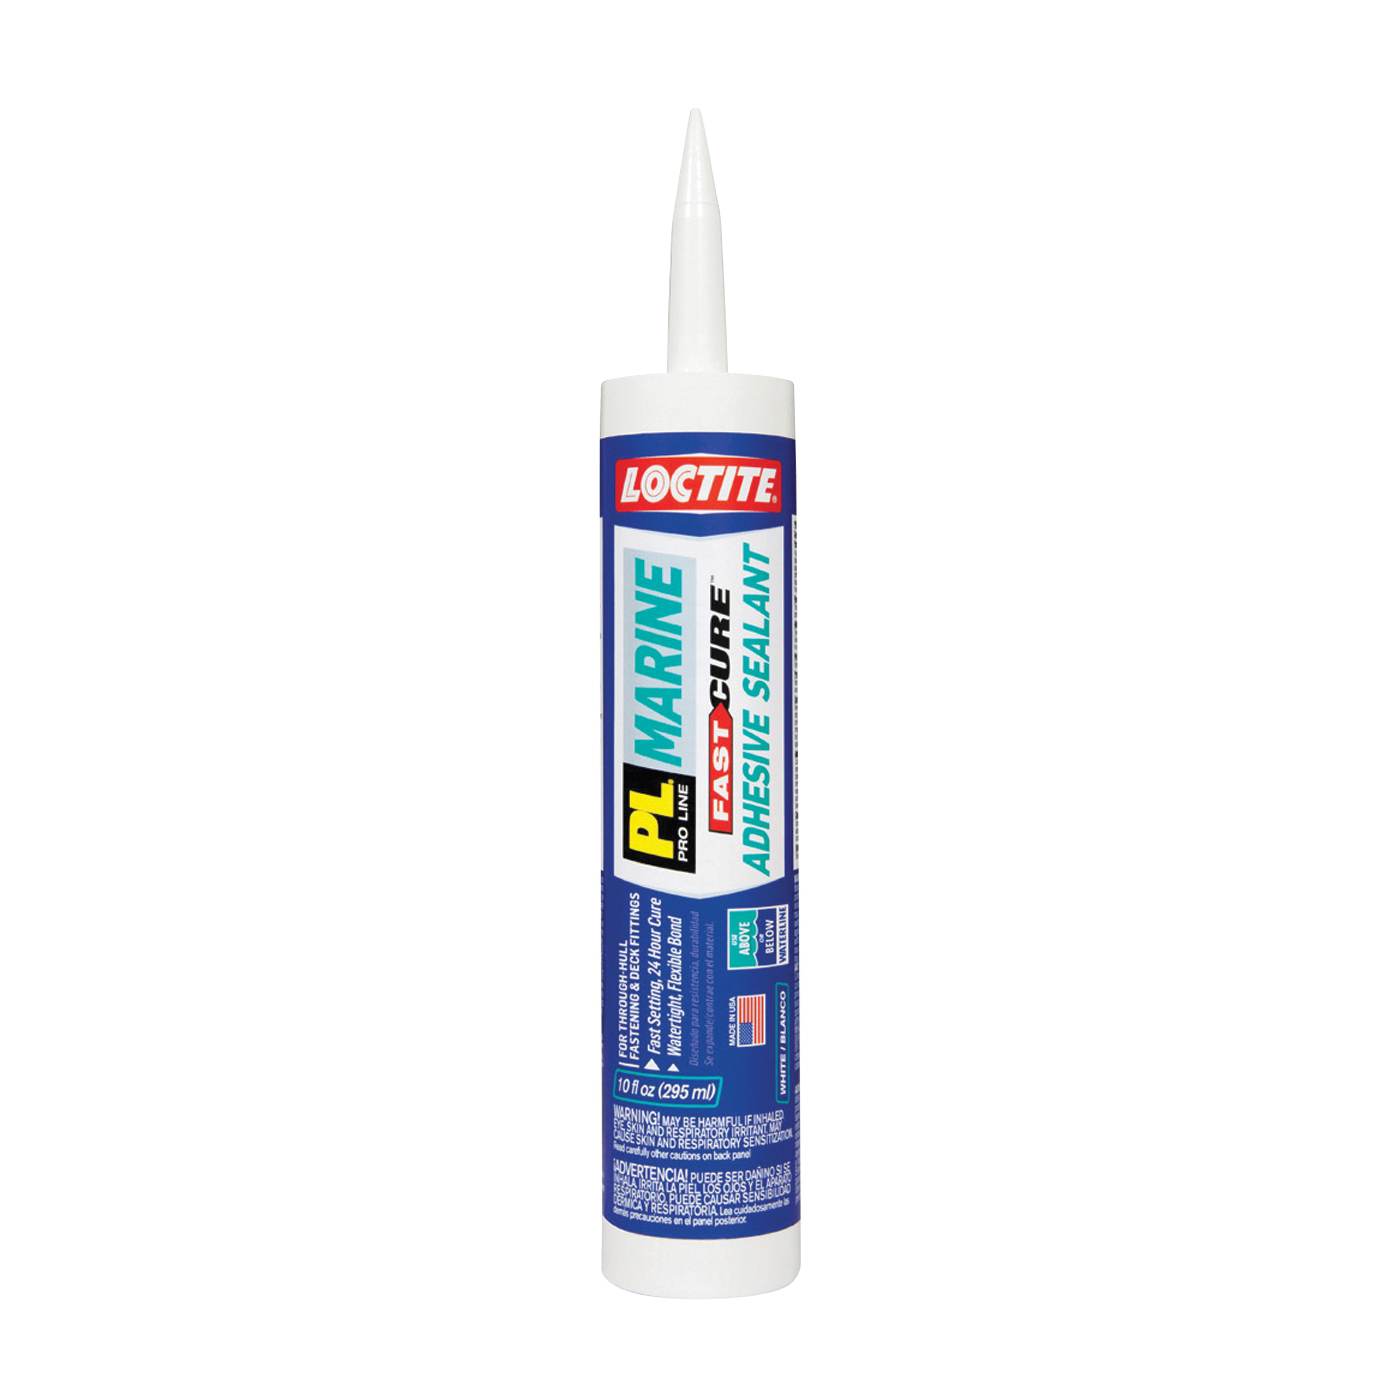 Picture of Loctite PL Marine 2016891 Adhesive Sealant, White, 24 hr Curing, 32 to 100 deg F, 10.1 fl-oz Package, Cartridge